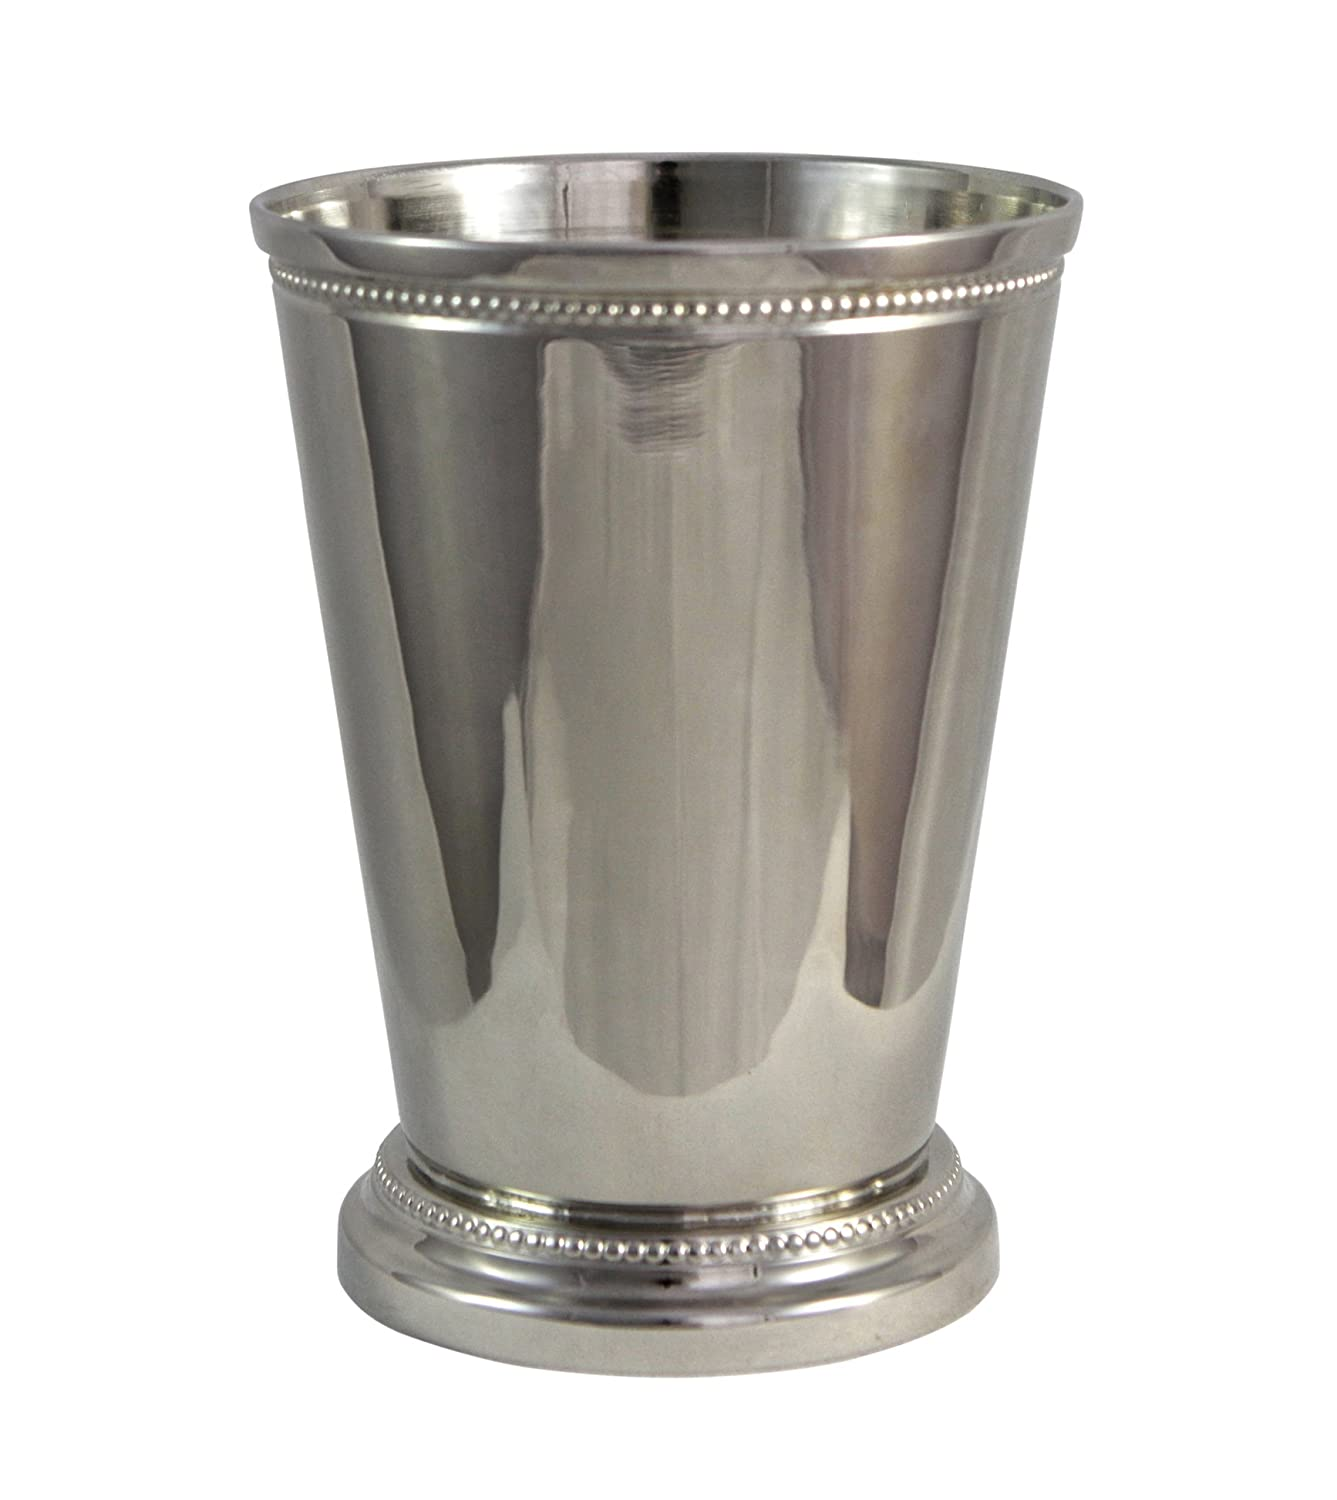 Amazon moscow mule mint julep cup 12 oz nickel plate amazon moscow mule mint julep cup 12 oz nickel plate beautifully beaded trim edging mint julep cups capacity 12 ounce by alchemade mint julep cups reviewsmspy